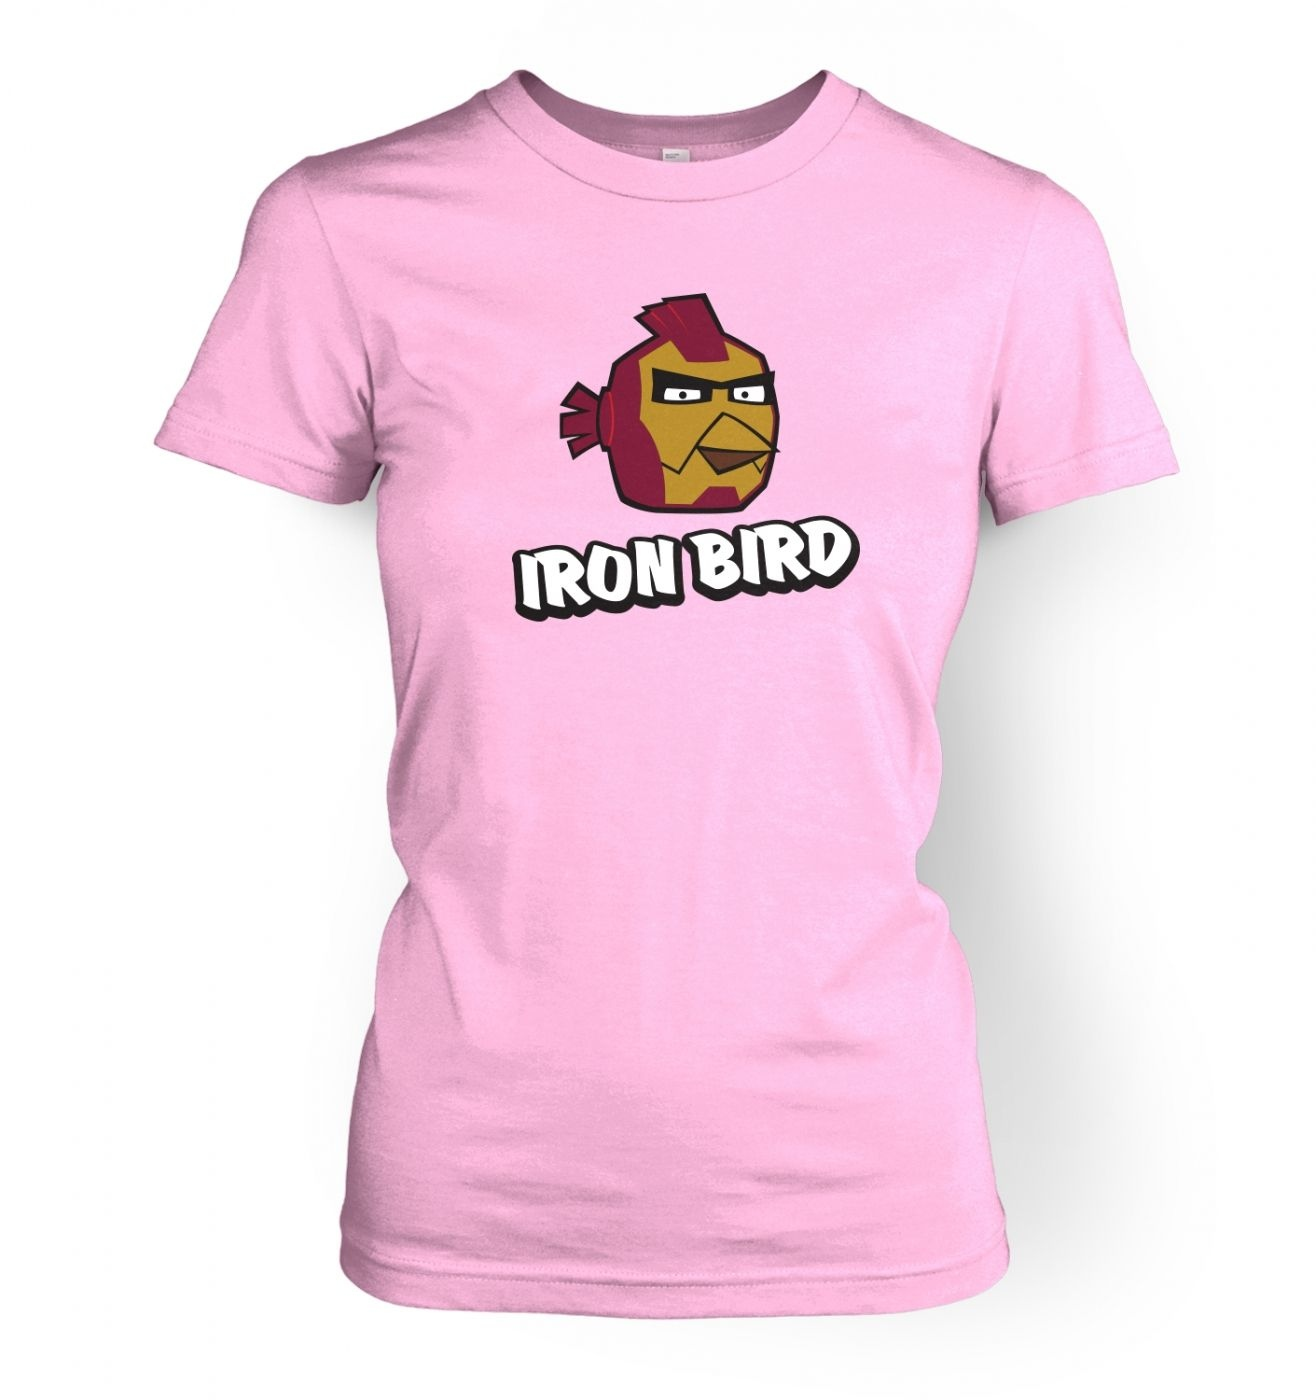 Iron Bird Ladies' T shirt Inspired By Avengers, Angry Birds And Iron Man